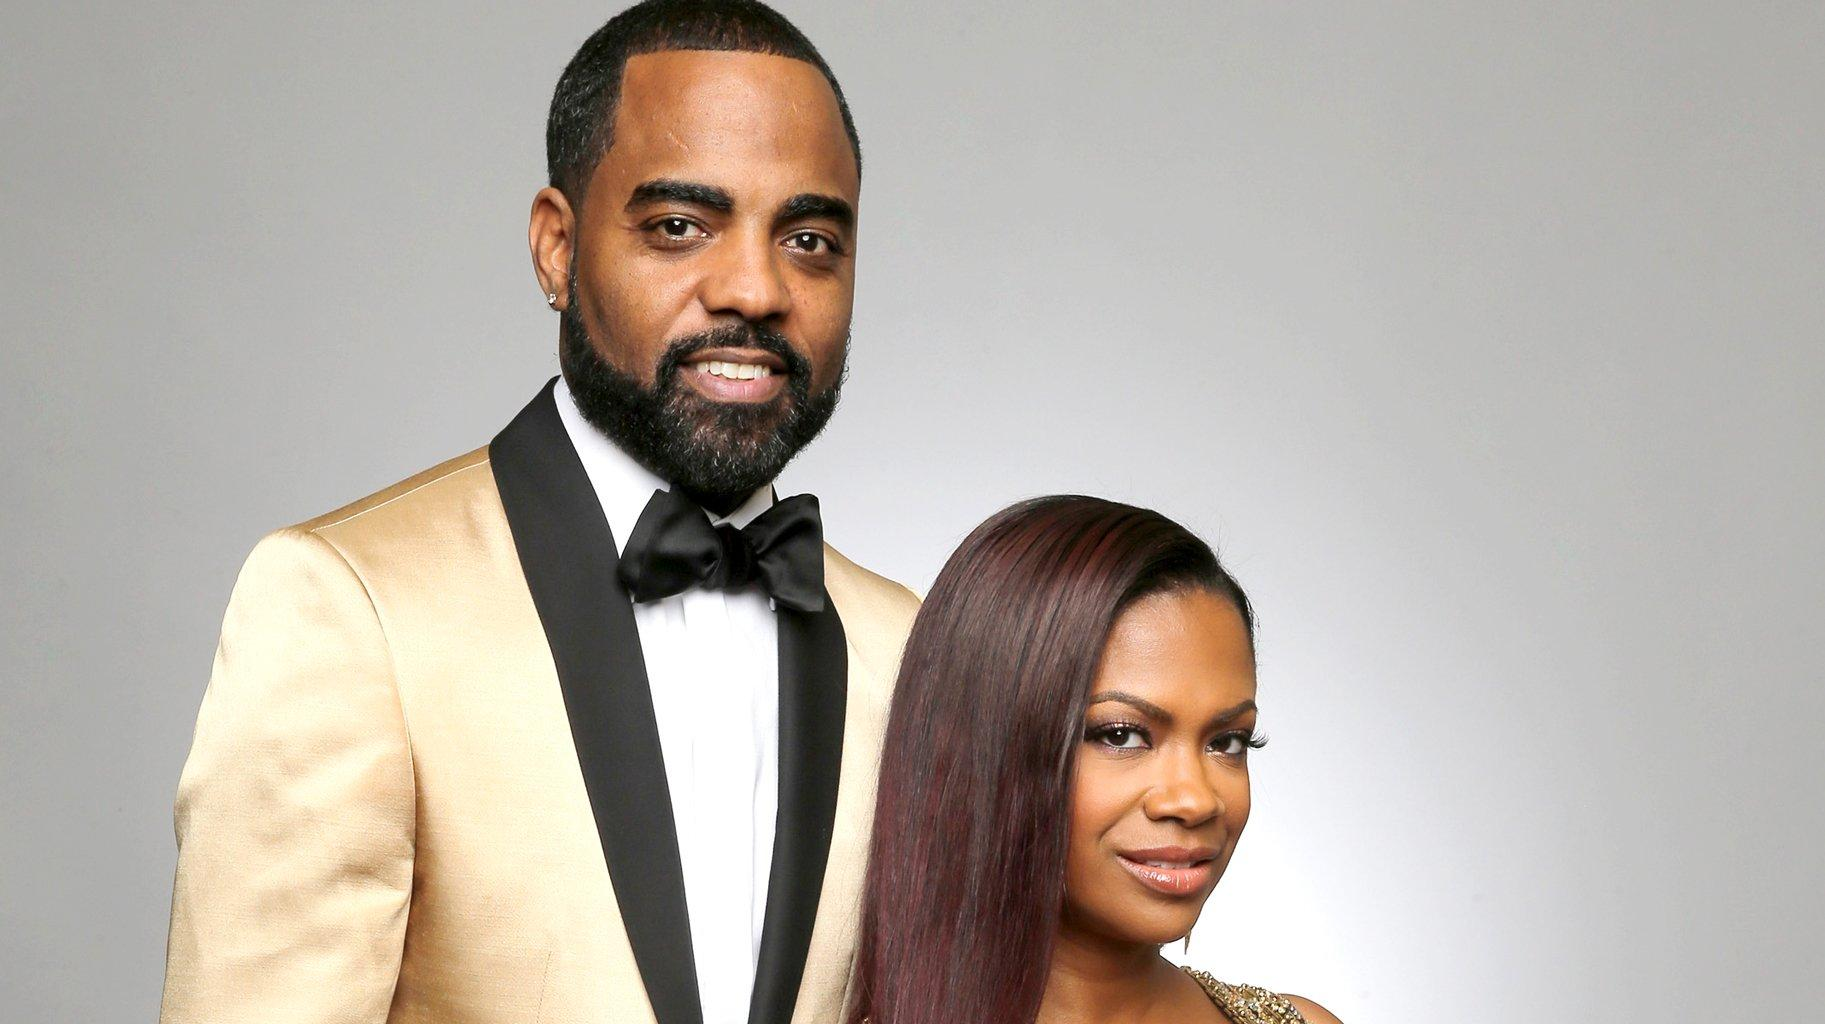 Kandi Burruss Invites Fans To A Date Night With Herself And Todd Tucker!